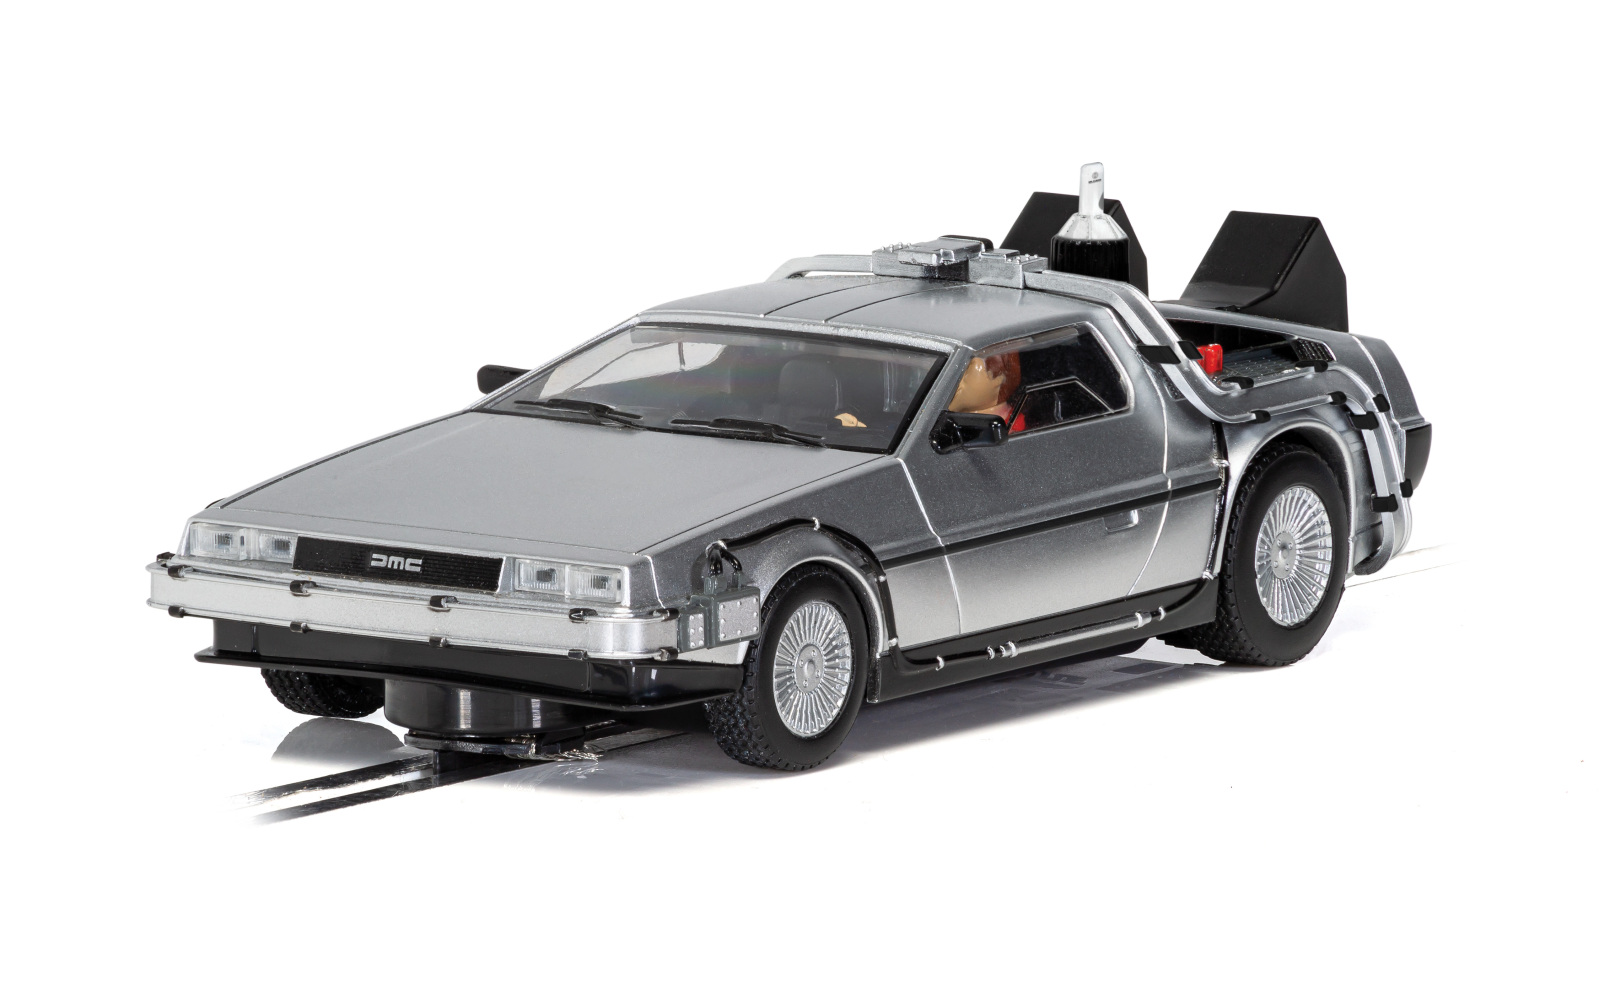 DeLorean from the Back to the Future 2